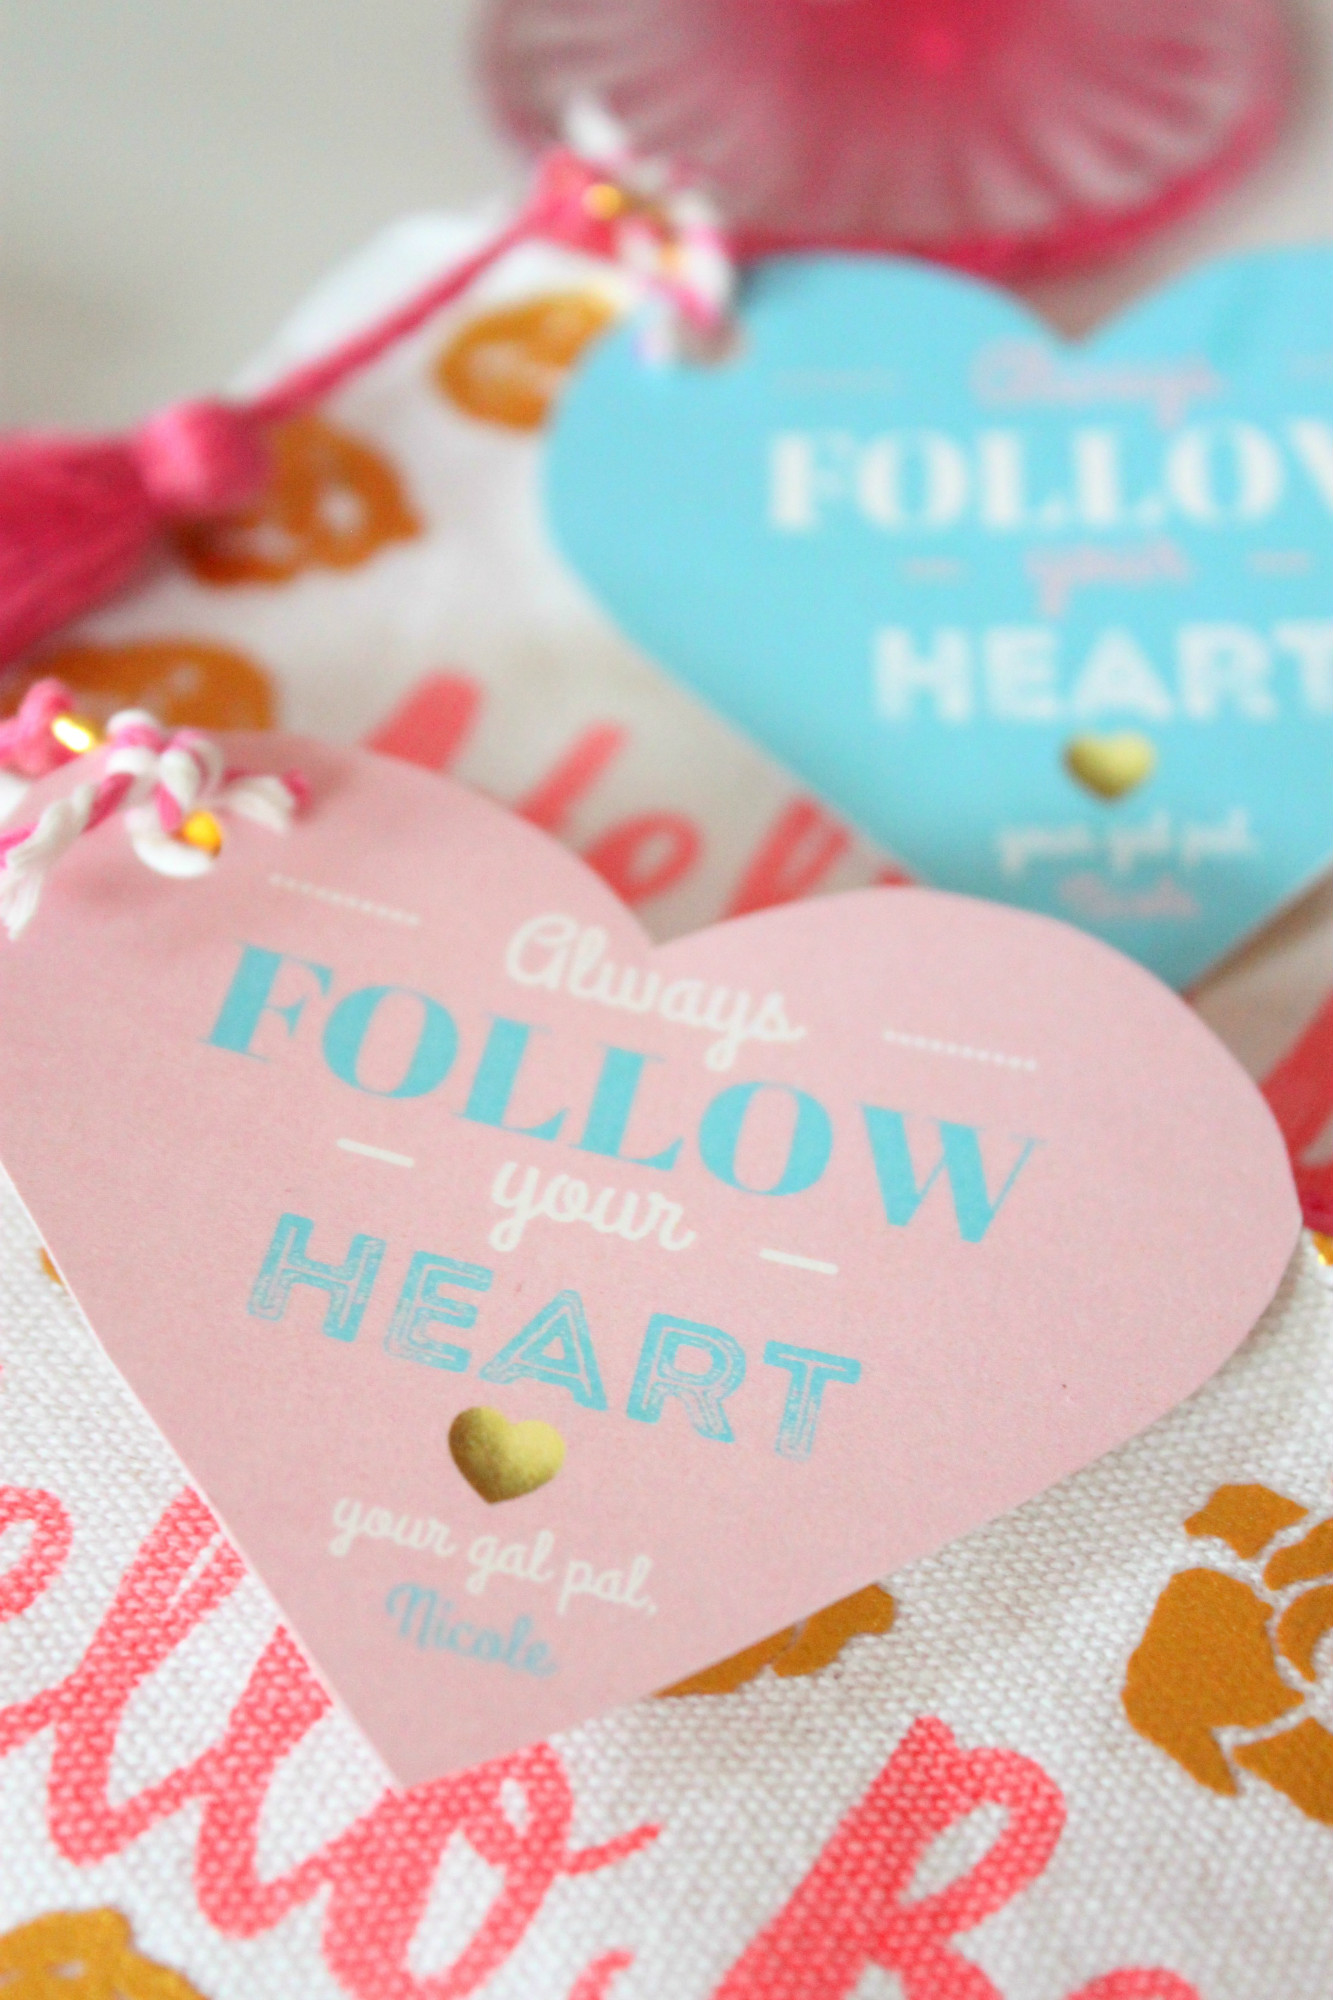 Favors from Follow Your Heart Galentine's Day Party Dessert Table | Black Twine | The Party Porch